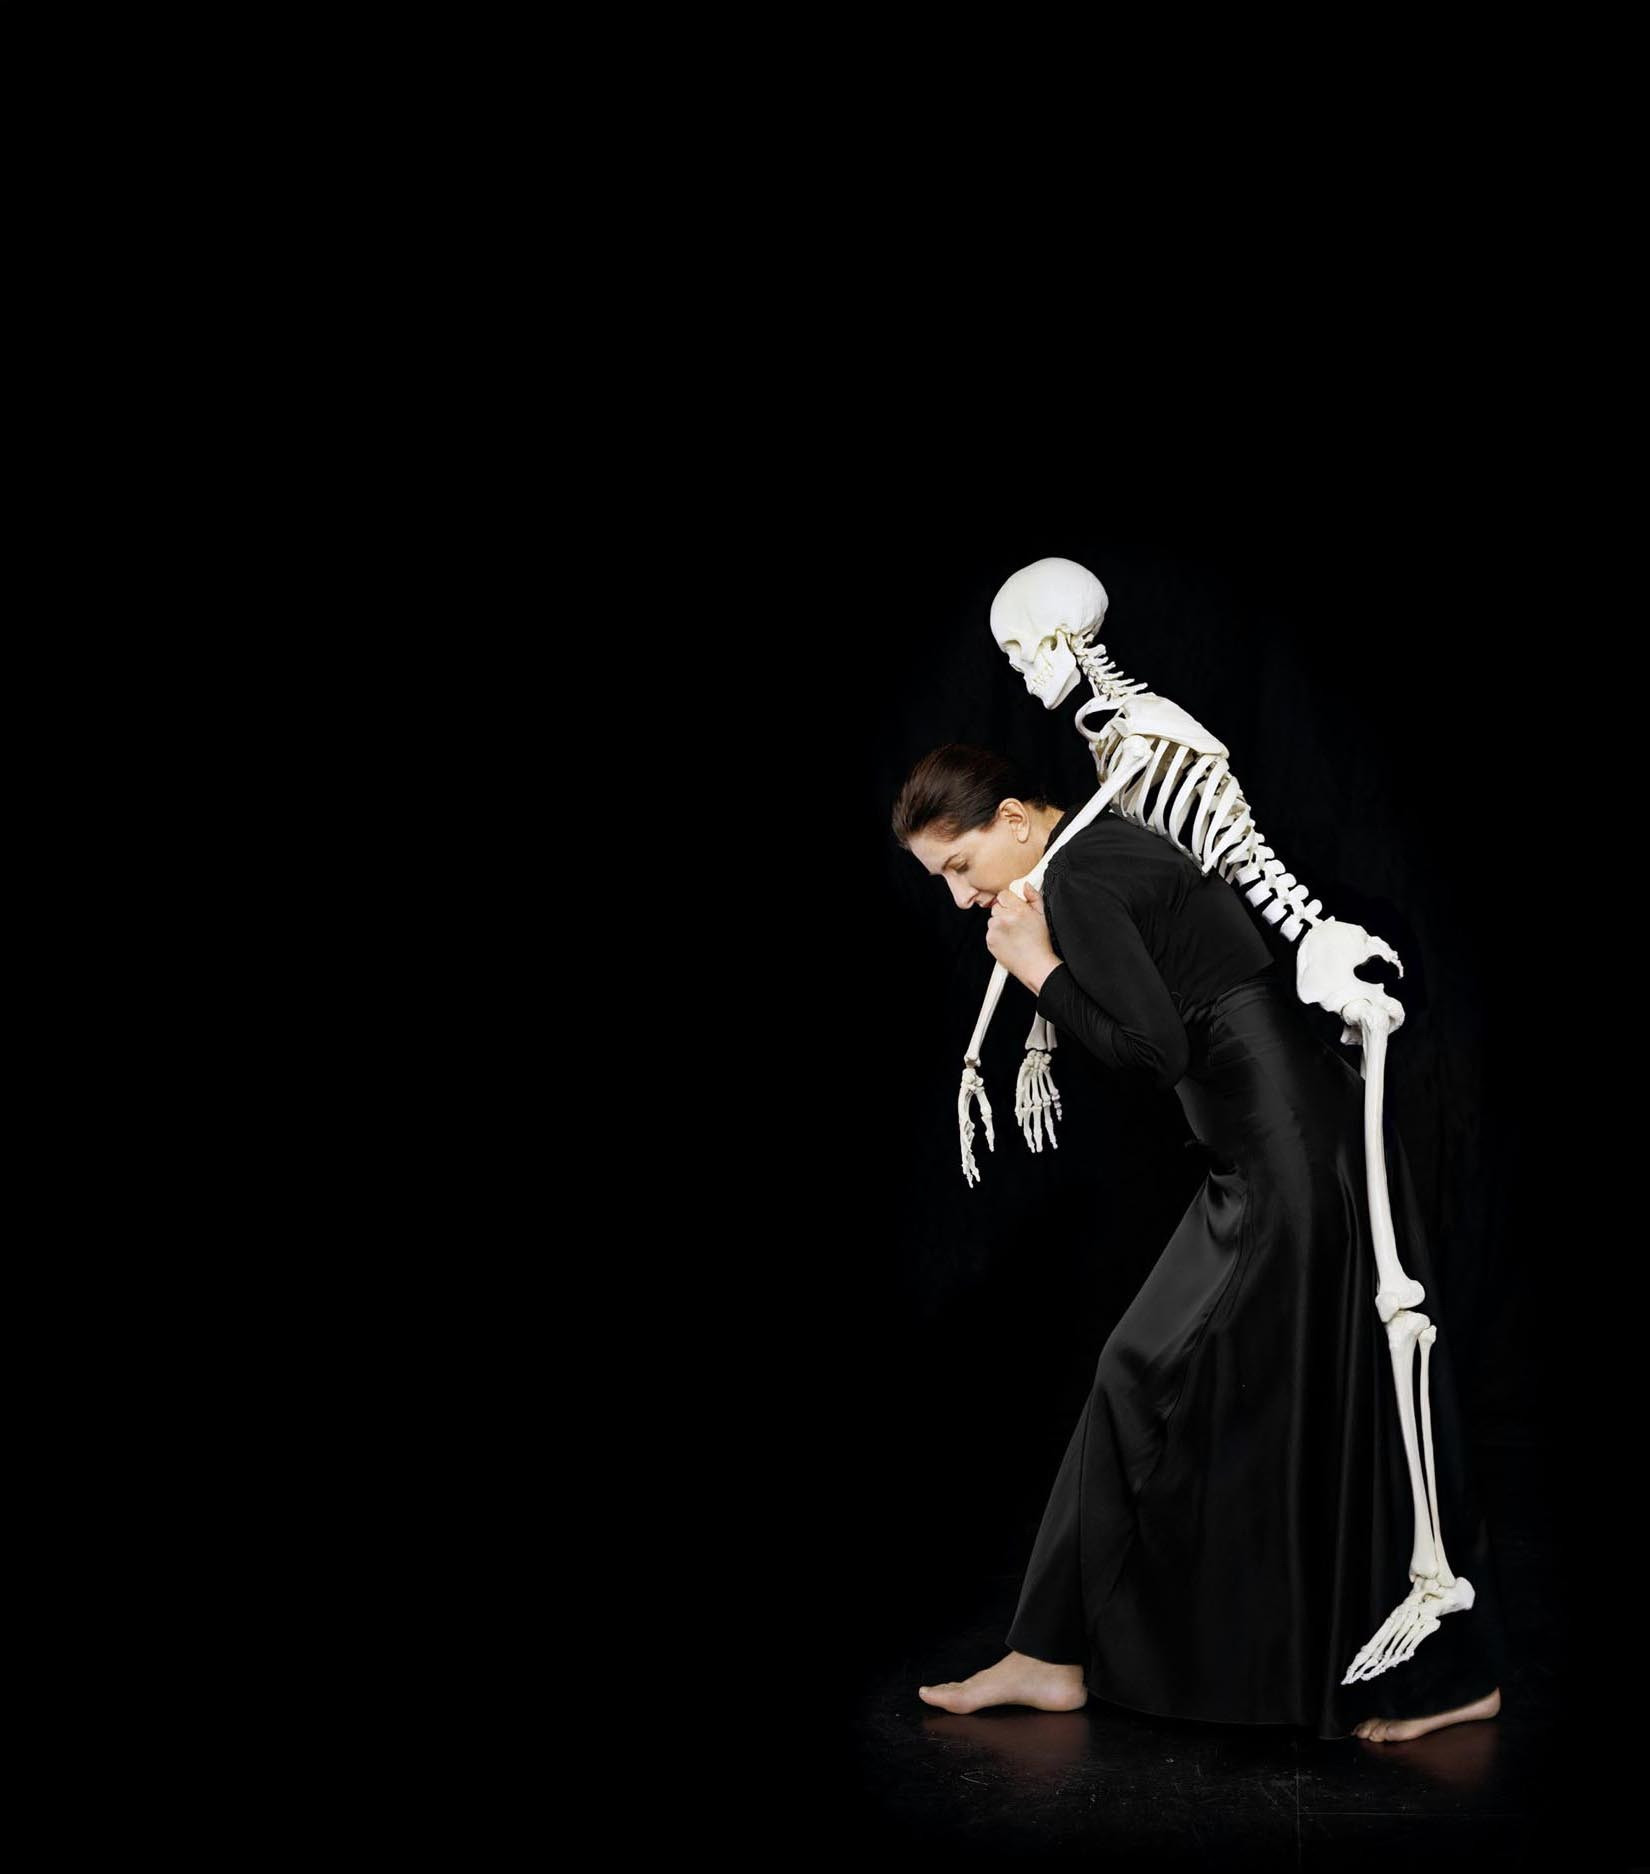 Marina Abramović. Carrying the Skeleton. 2008